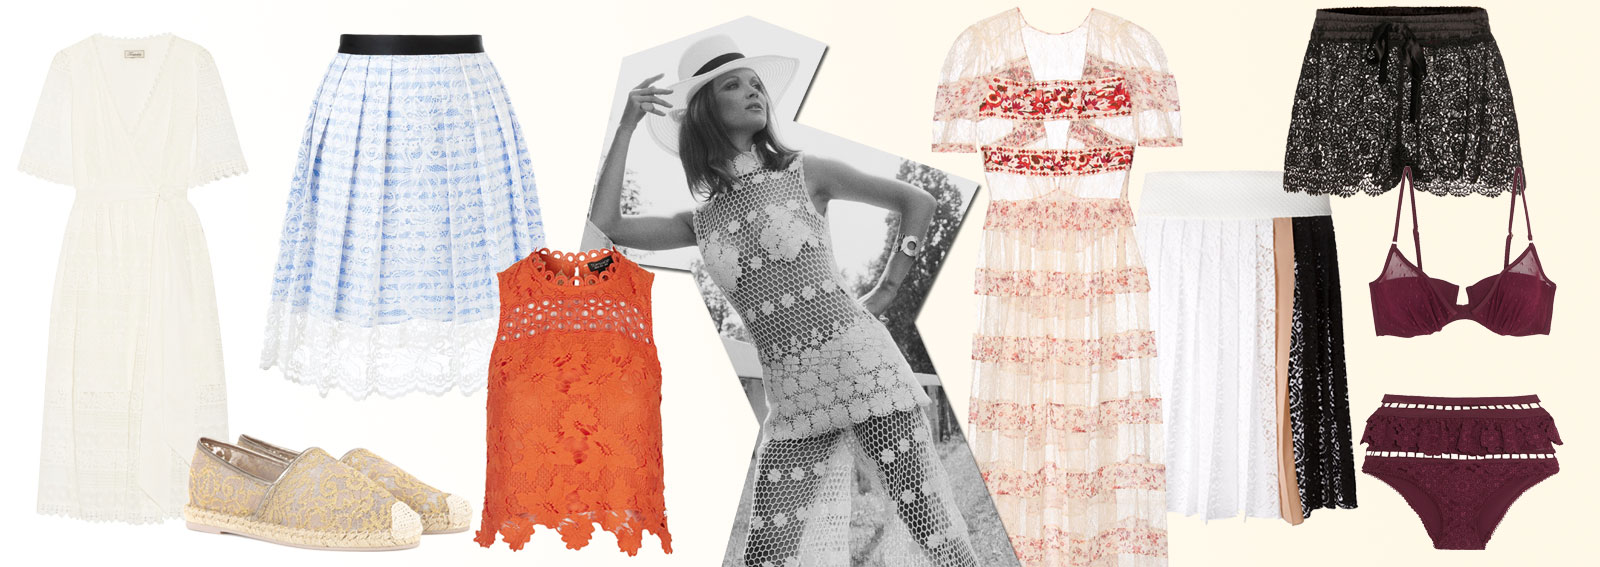 cover summer lace i capi in pizzo dekstop